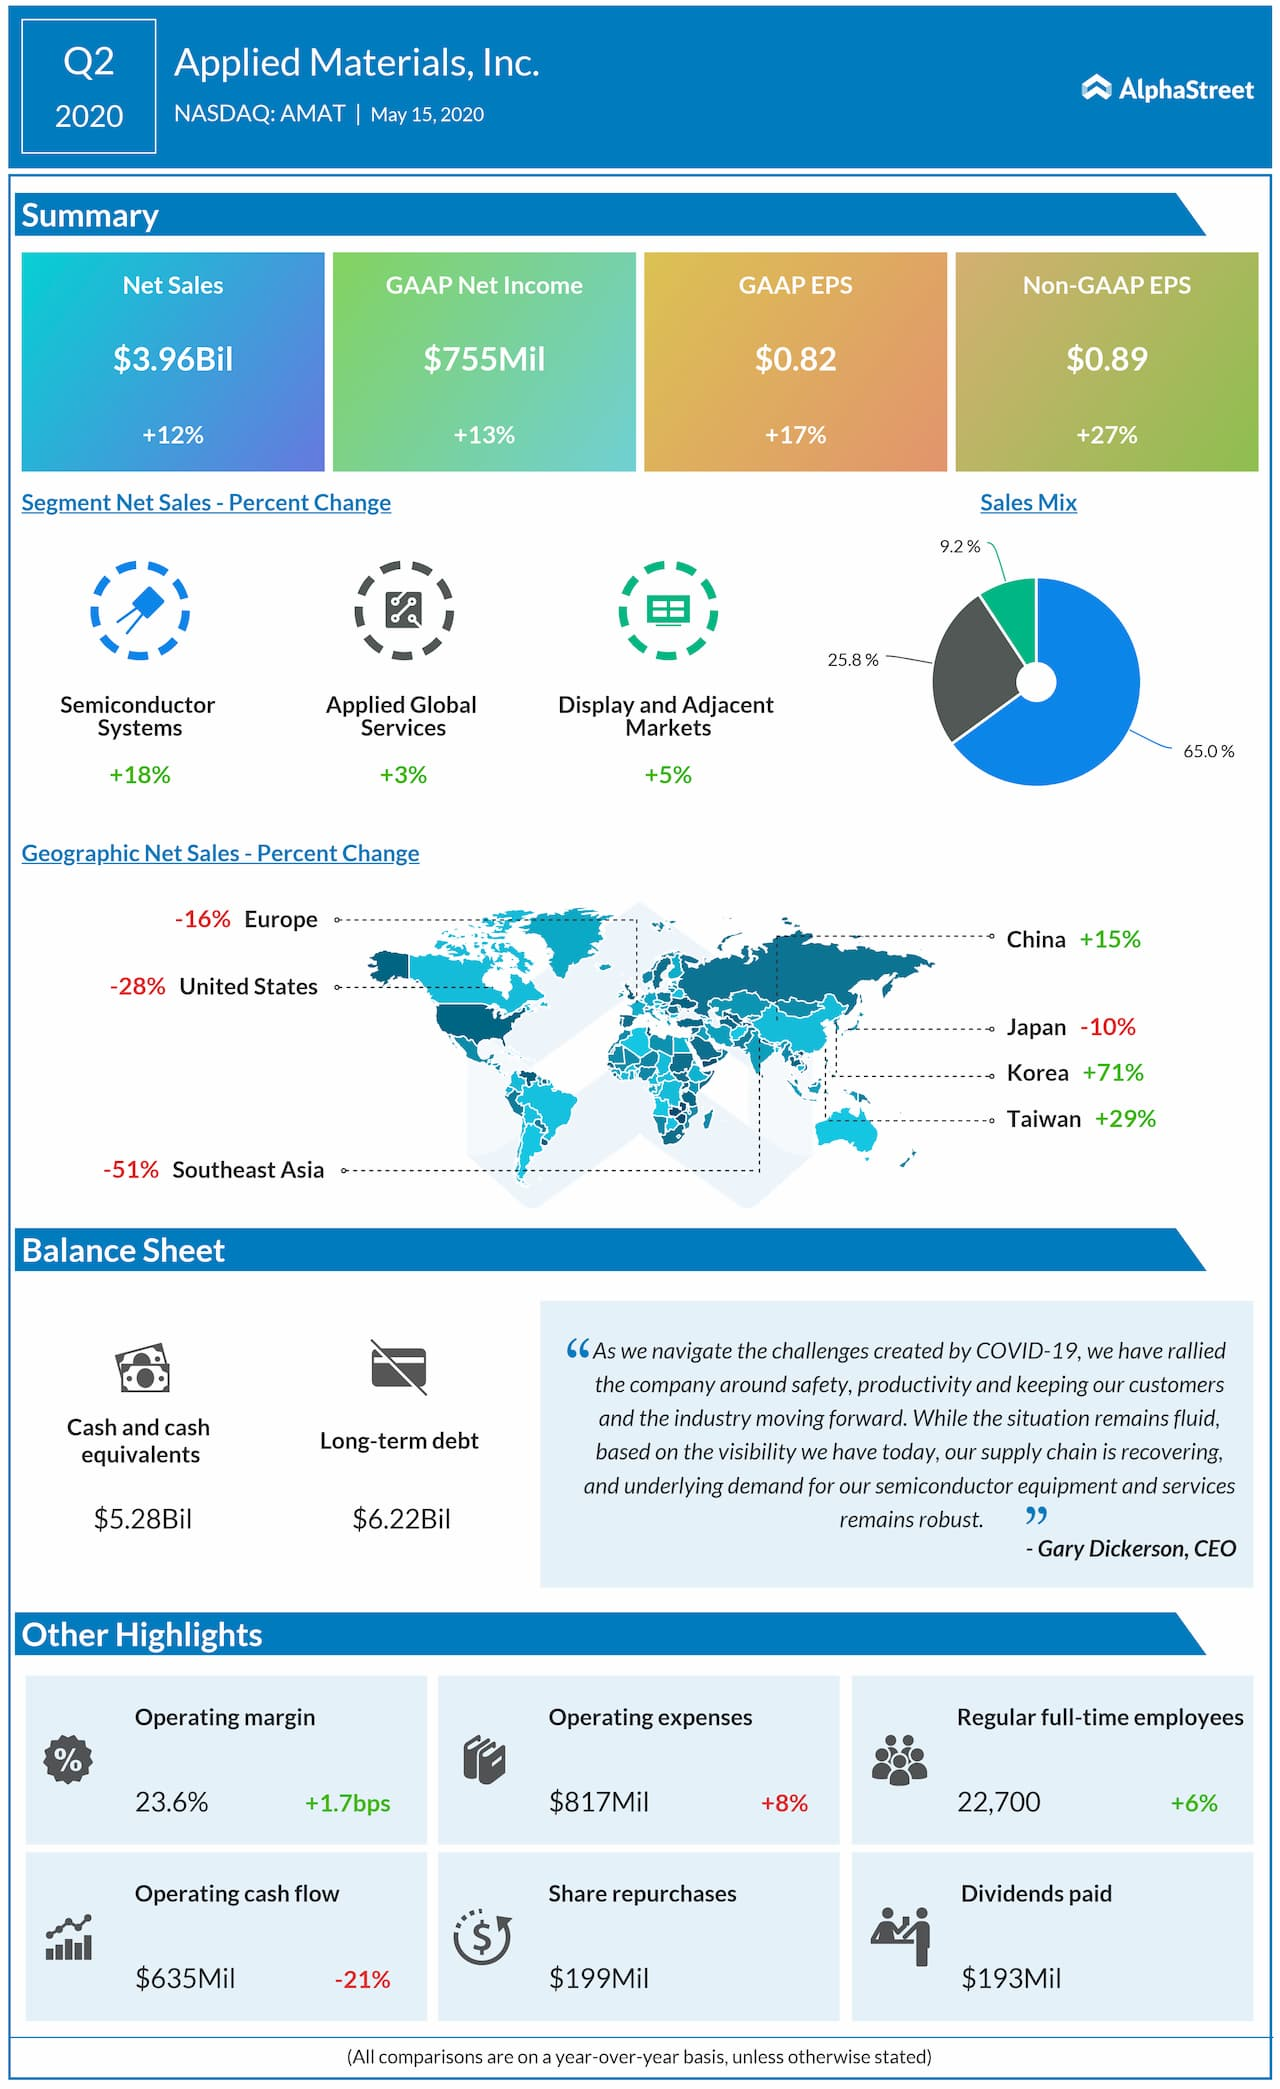 Applied Materials (AMAT) Q2 2020 earnings review